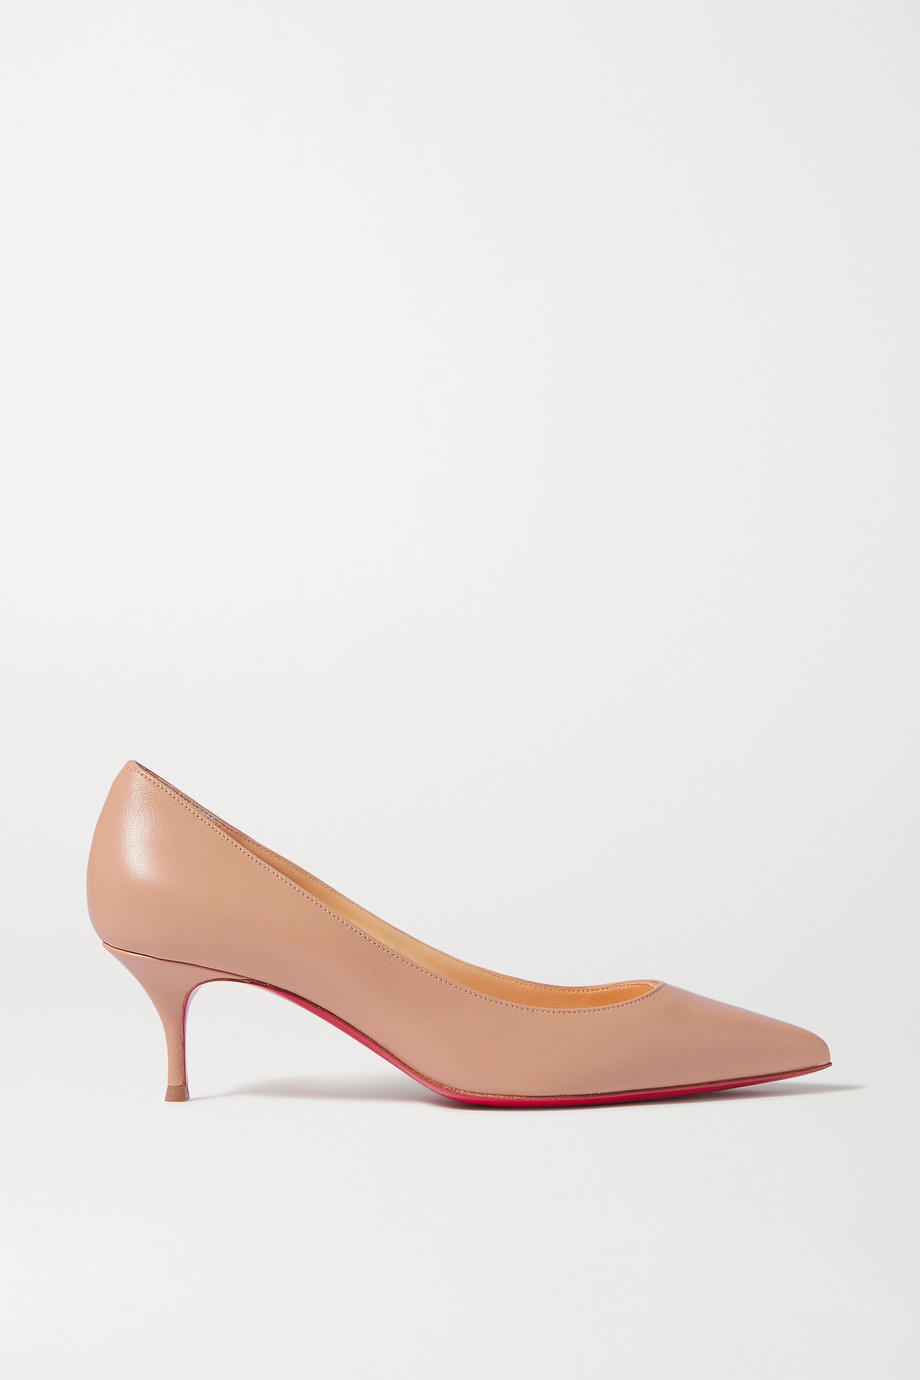 Christian Louboutin Kate 55 leather pumps